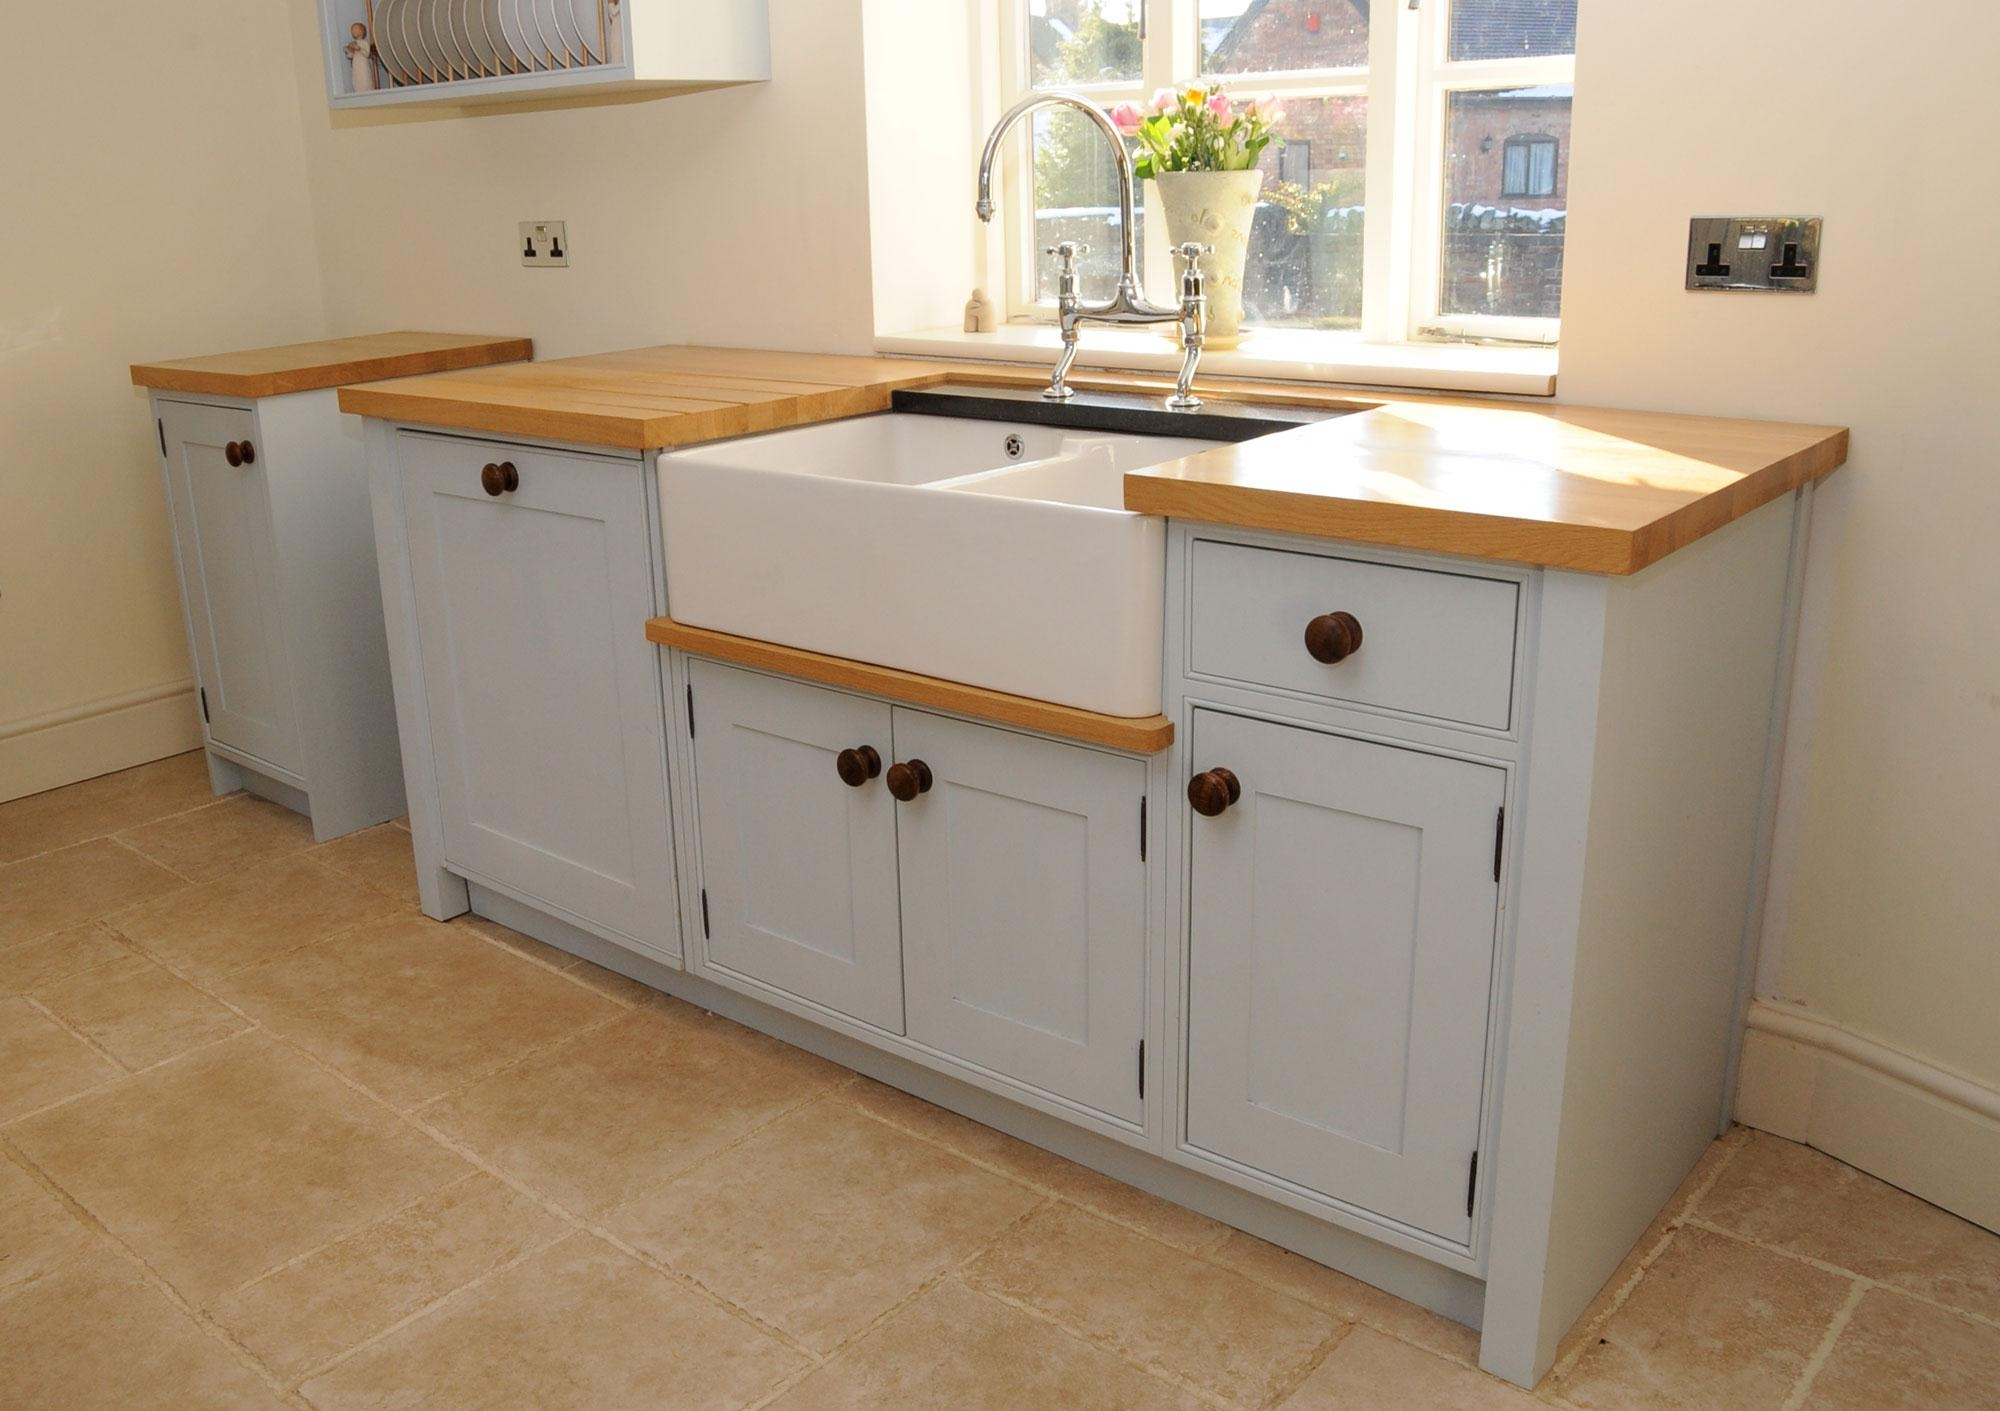 Kitchen Cabinet With Sink Included